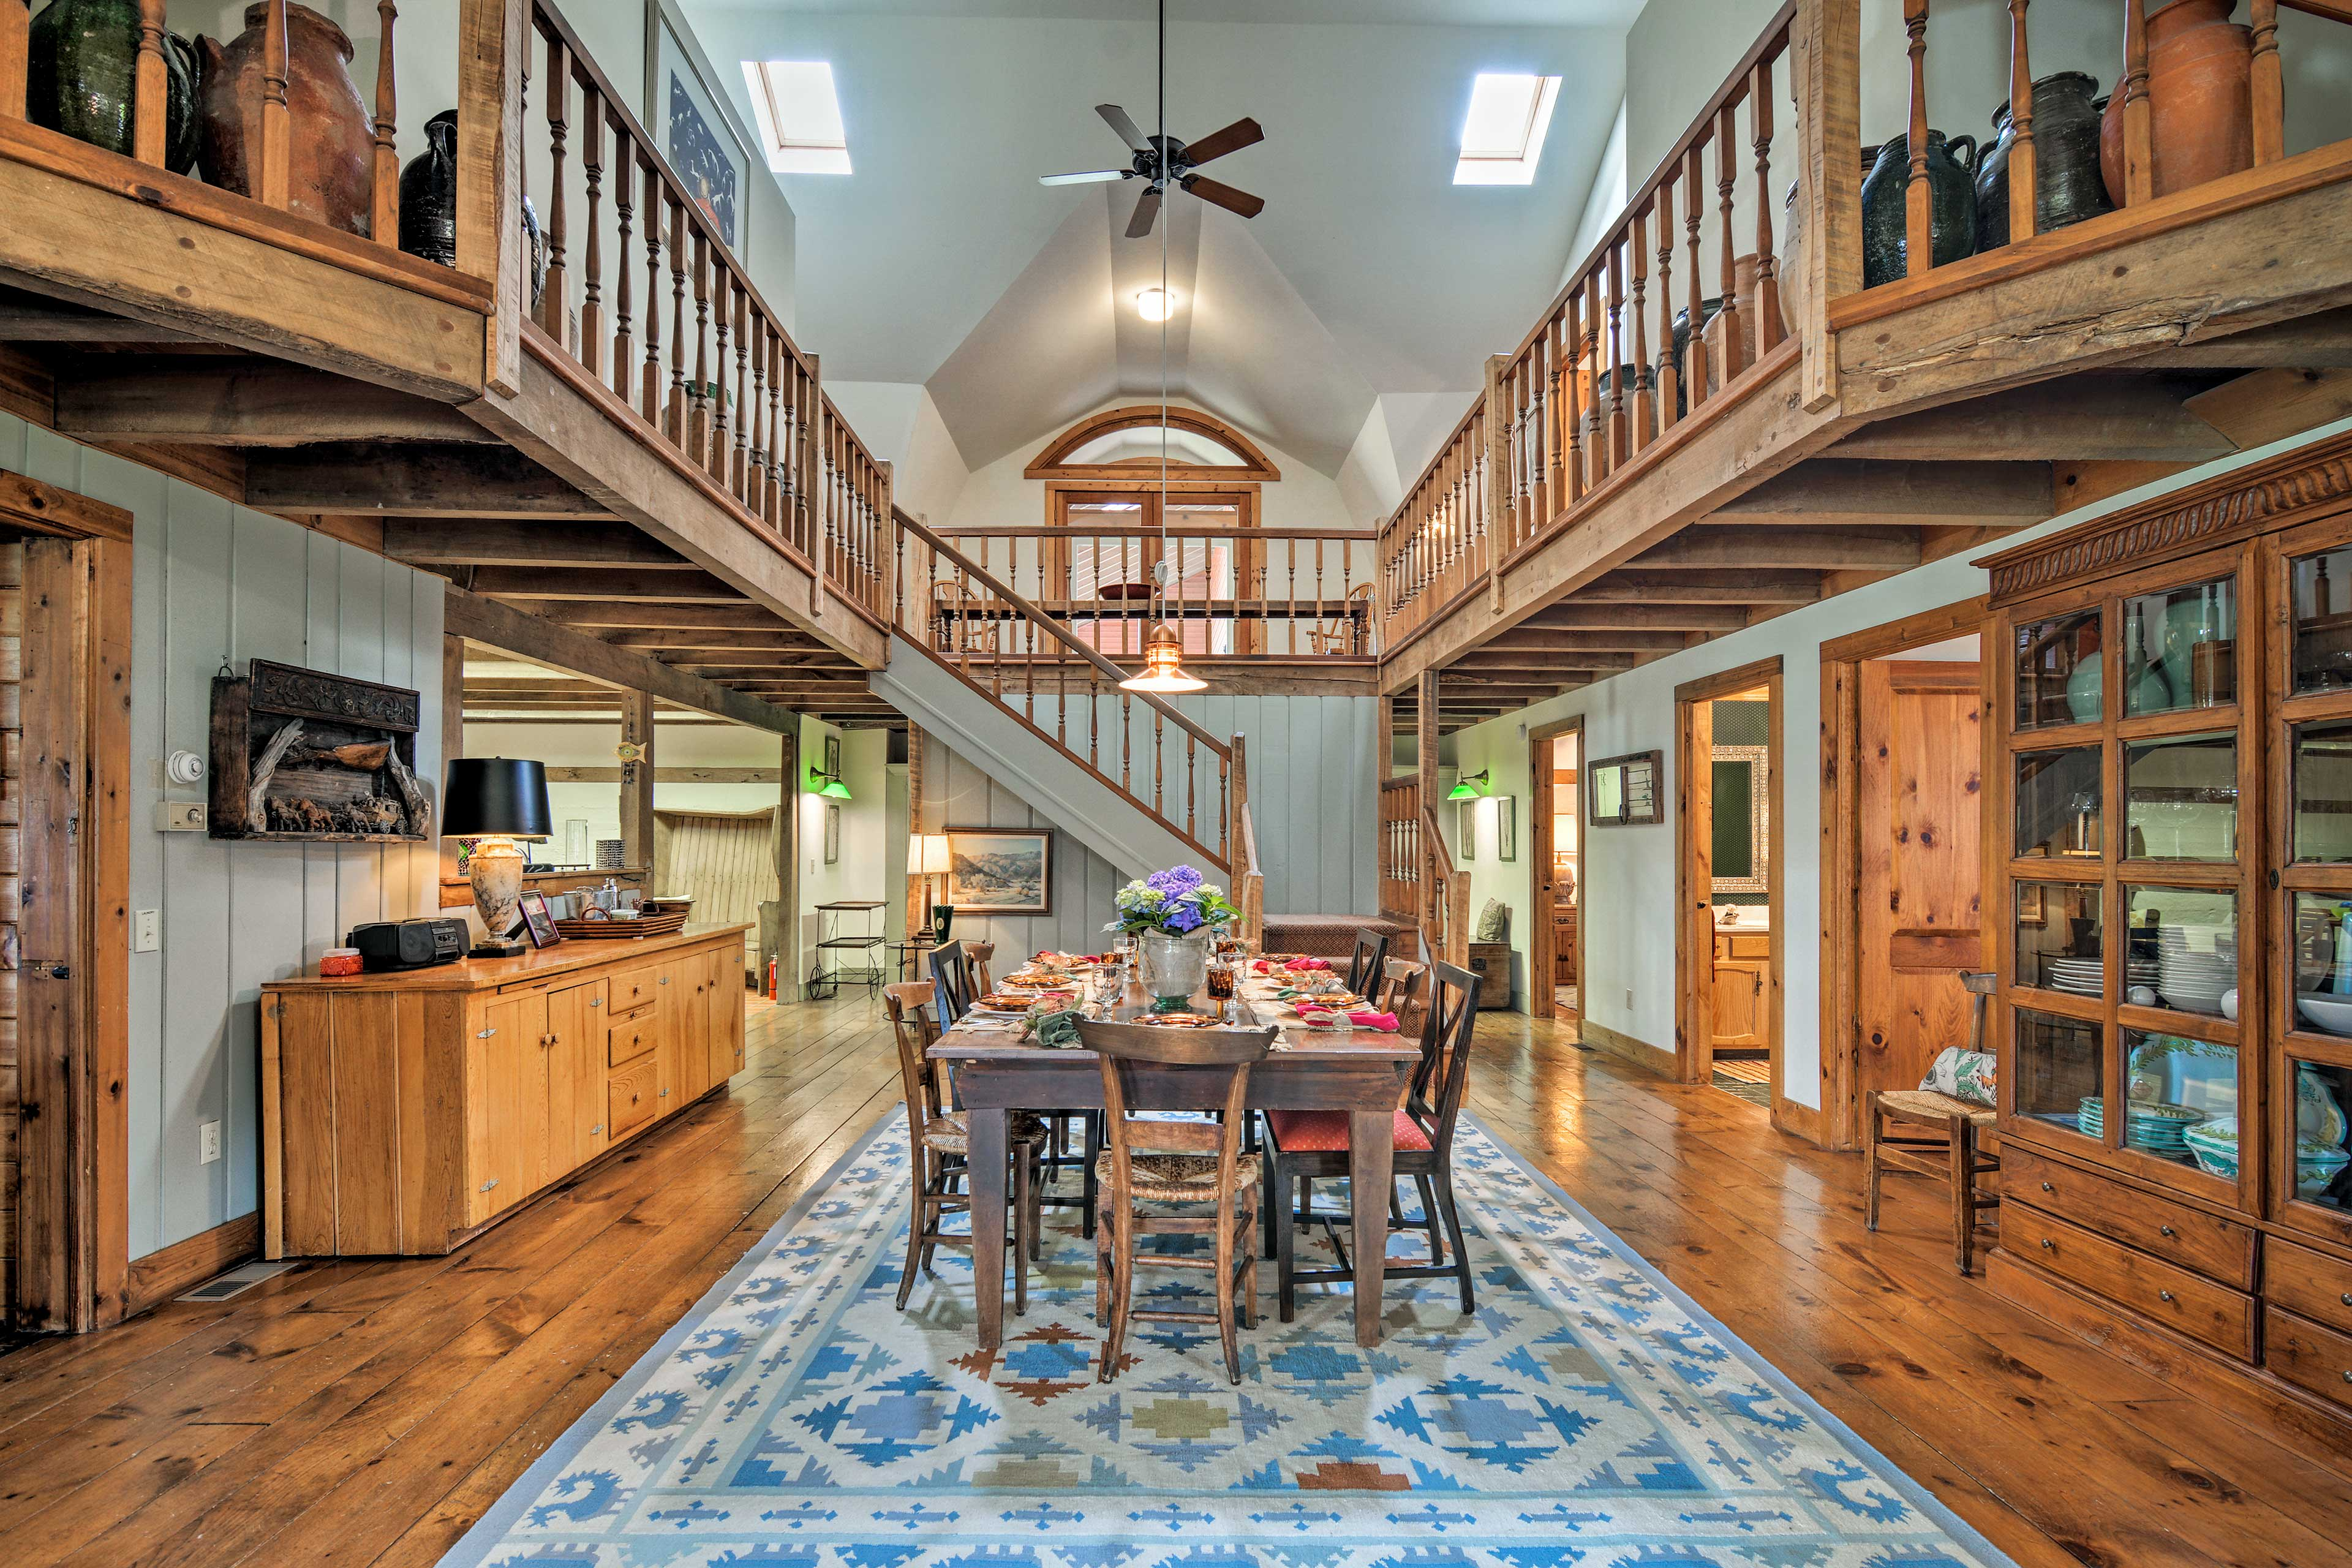 The large open floor plan is great for entertaining.